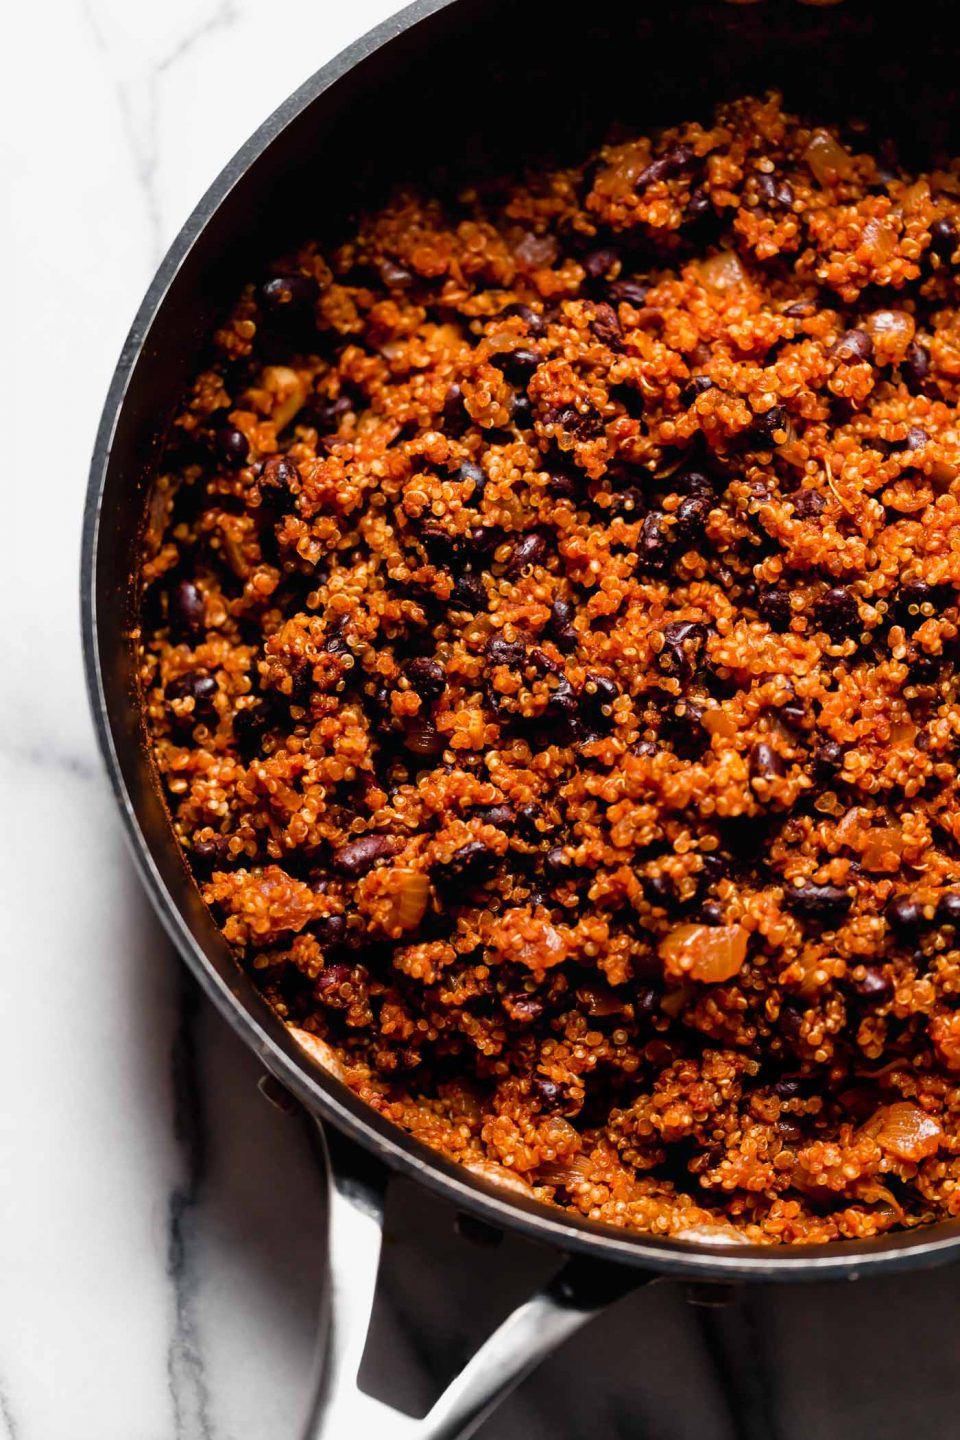 Cooked Quinoa Black Bean Taco filling (vegan taco meat) in black skillet on marble surface.